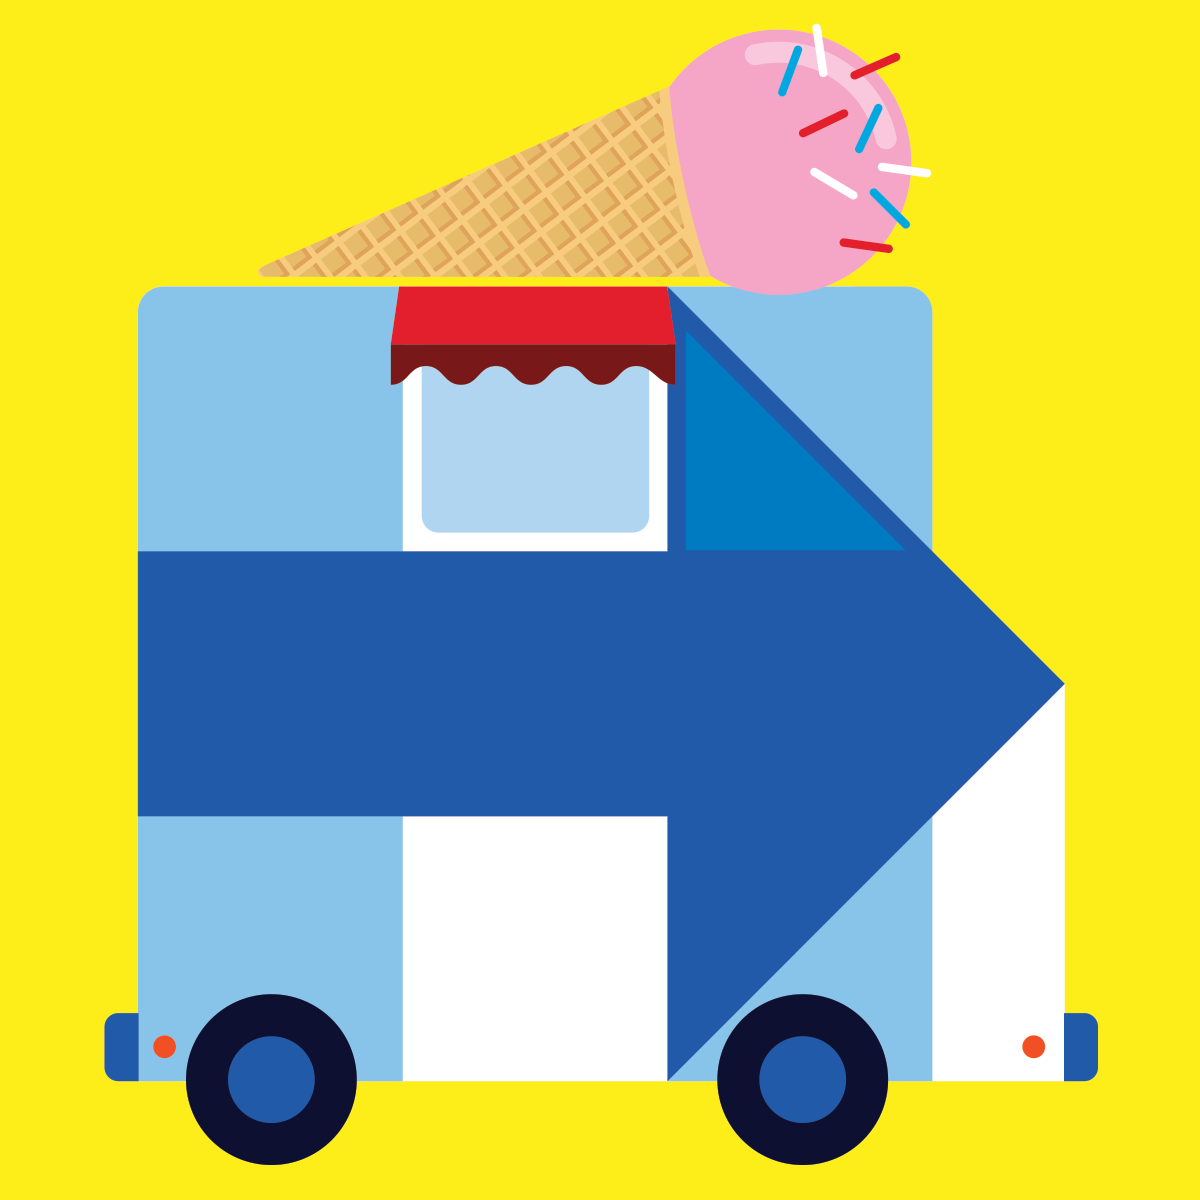 Ice-cream-H-072316.png